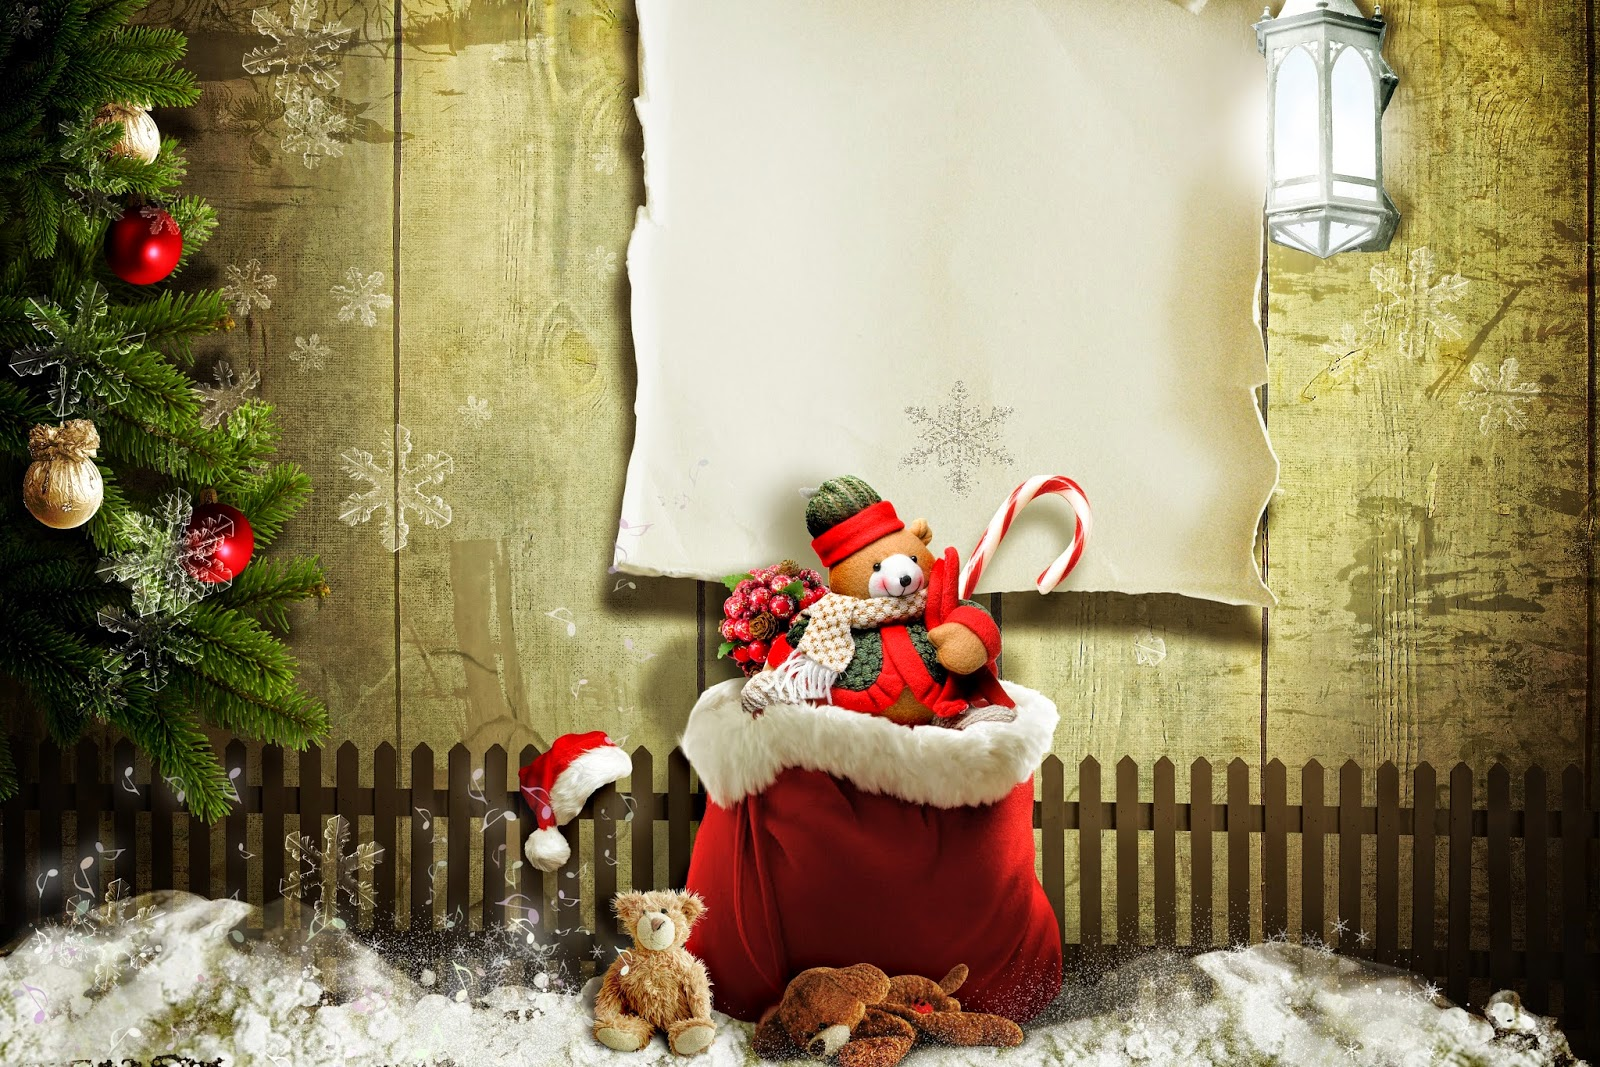 Christmas Teddy Bear Wallpaper: Cute Teddy Bear Wallpapers For Little Kids And Children